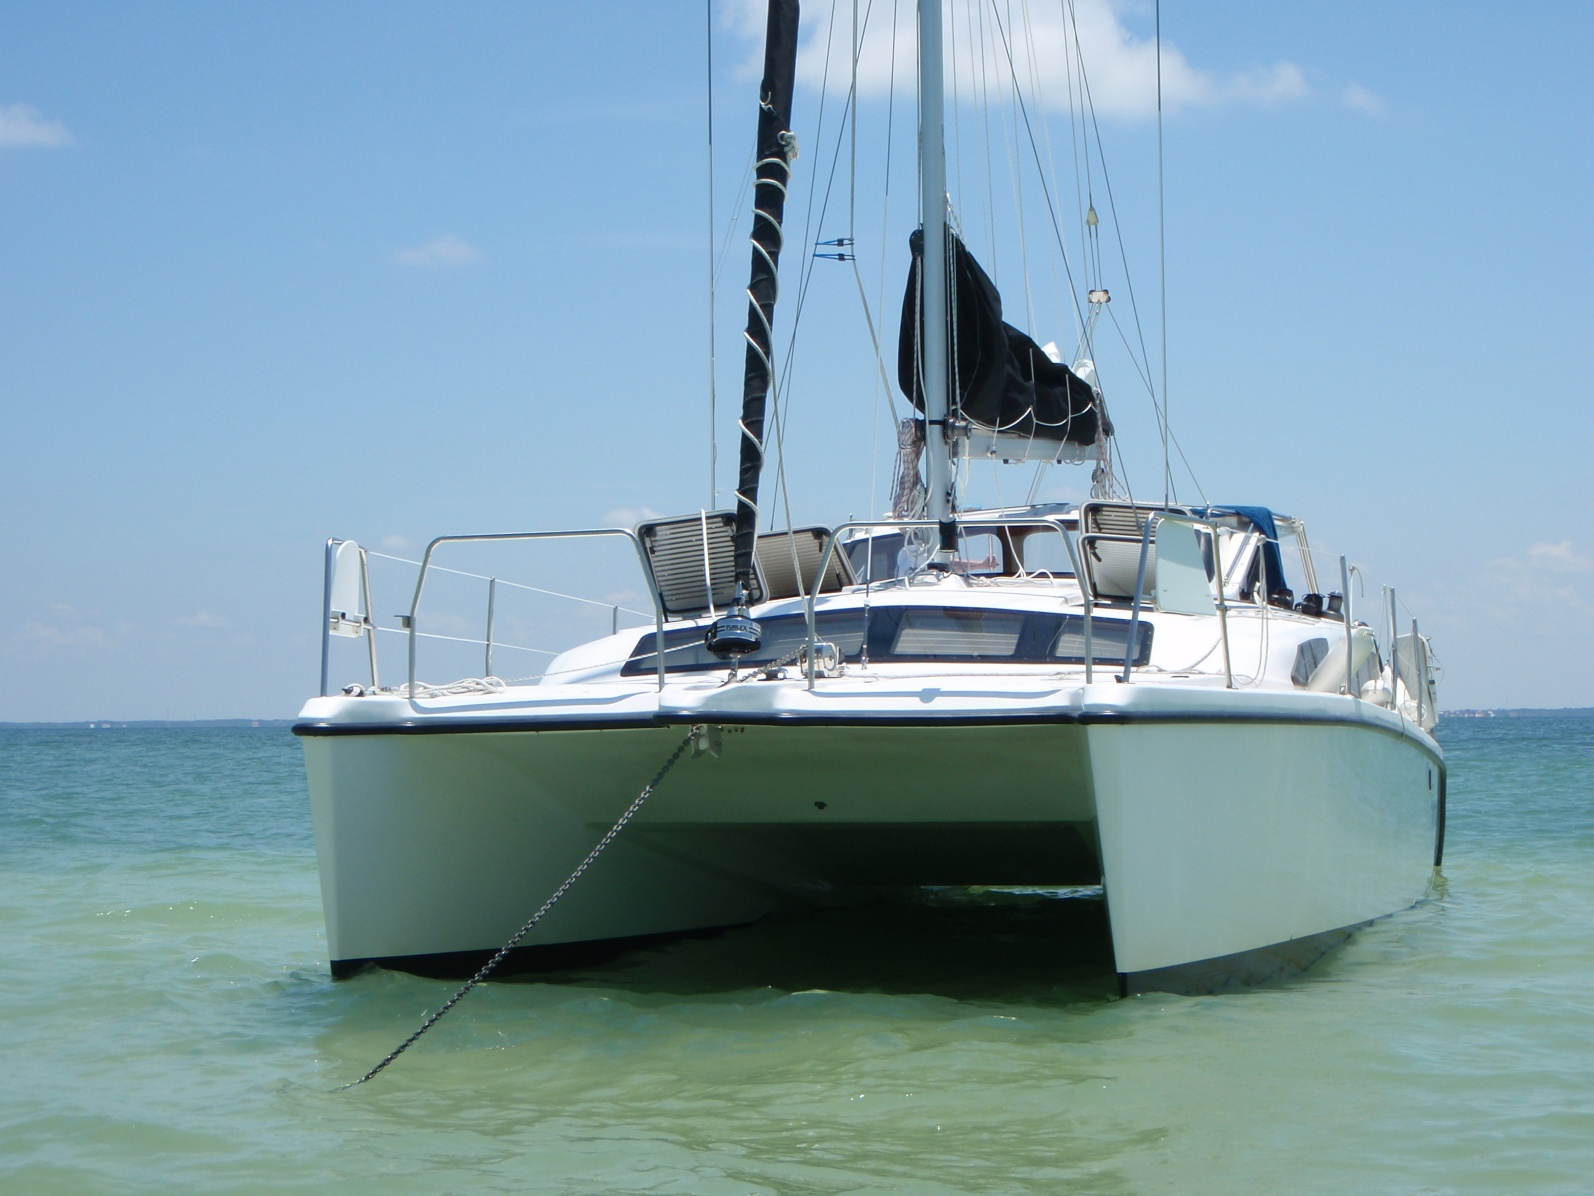 Click image for larger version  Name:First Anclote trip 6.jpg Views:162 Size:402.5 KB ID:29271